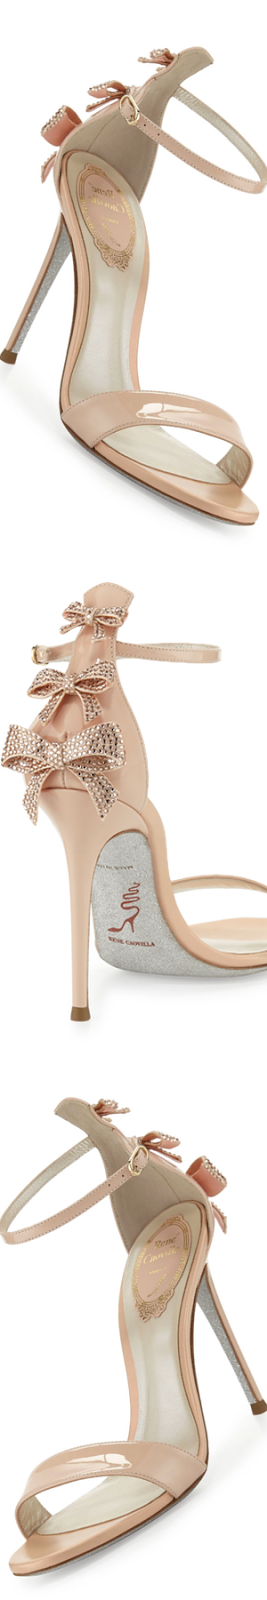 Rene Caovilla Crystal-Bow Patent 105mm Sandal, Neutral